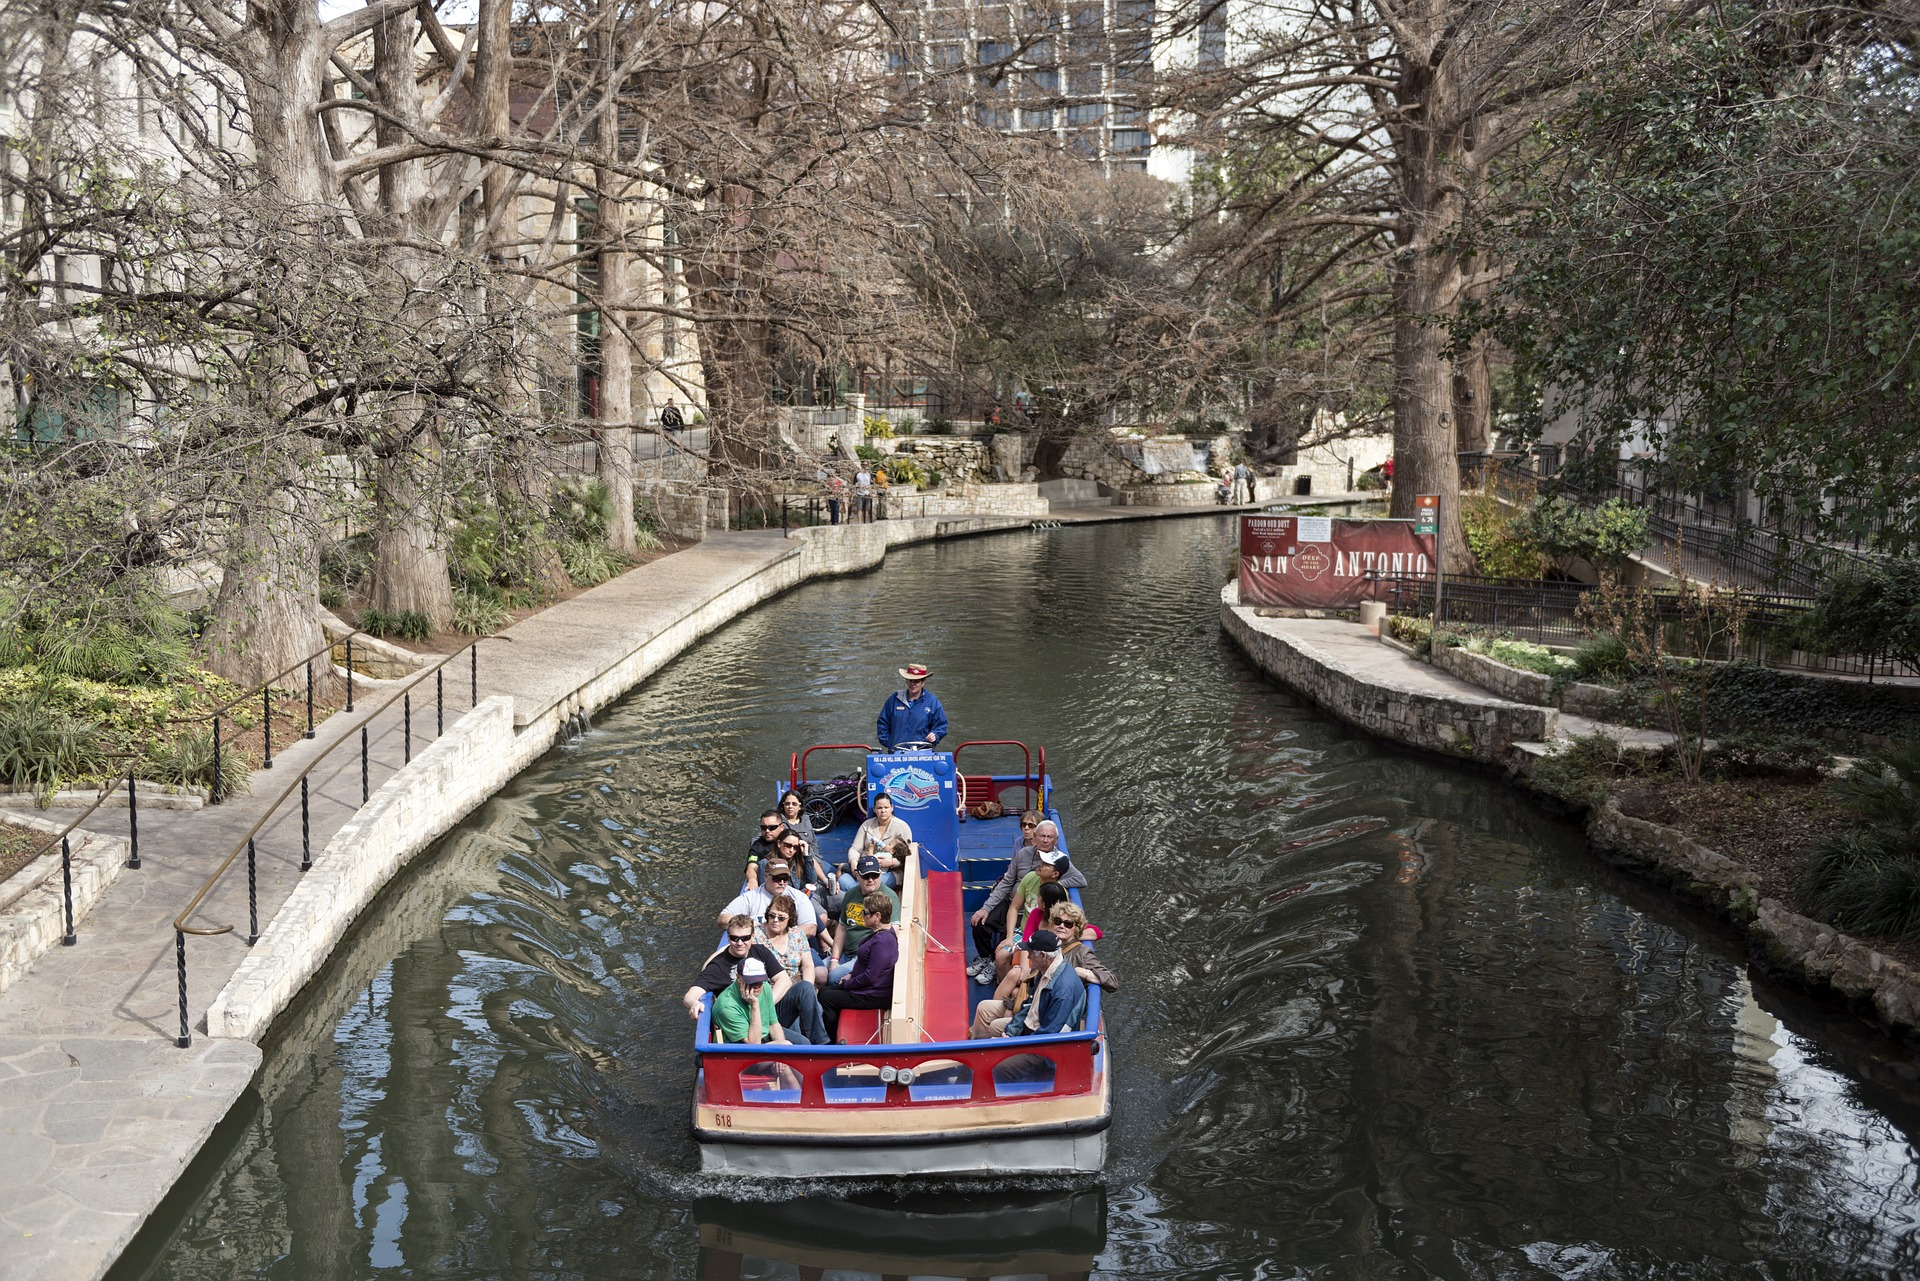 Long a tourist destination, the 14 miles of the San Antonio river walk are the perfect place for an exciting and fun-filled wedding weekend.